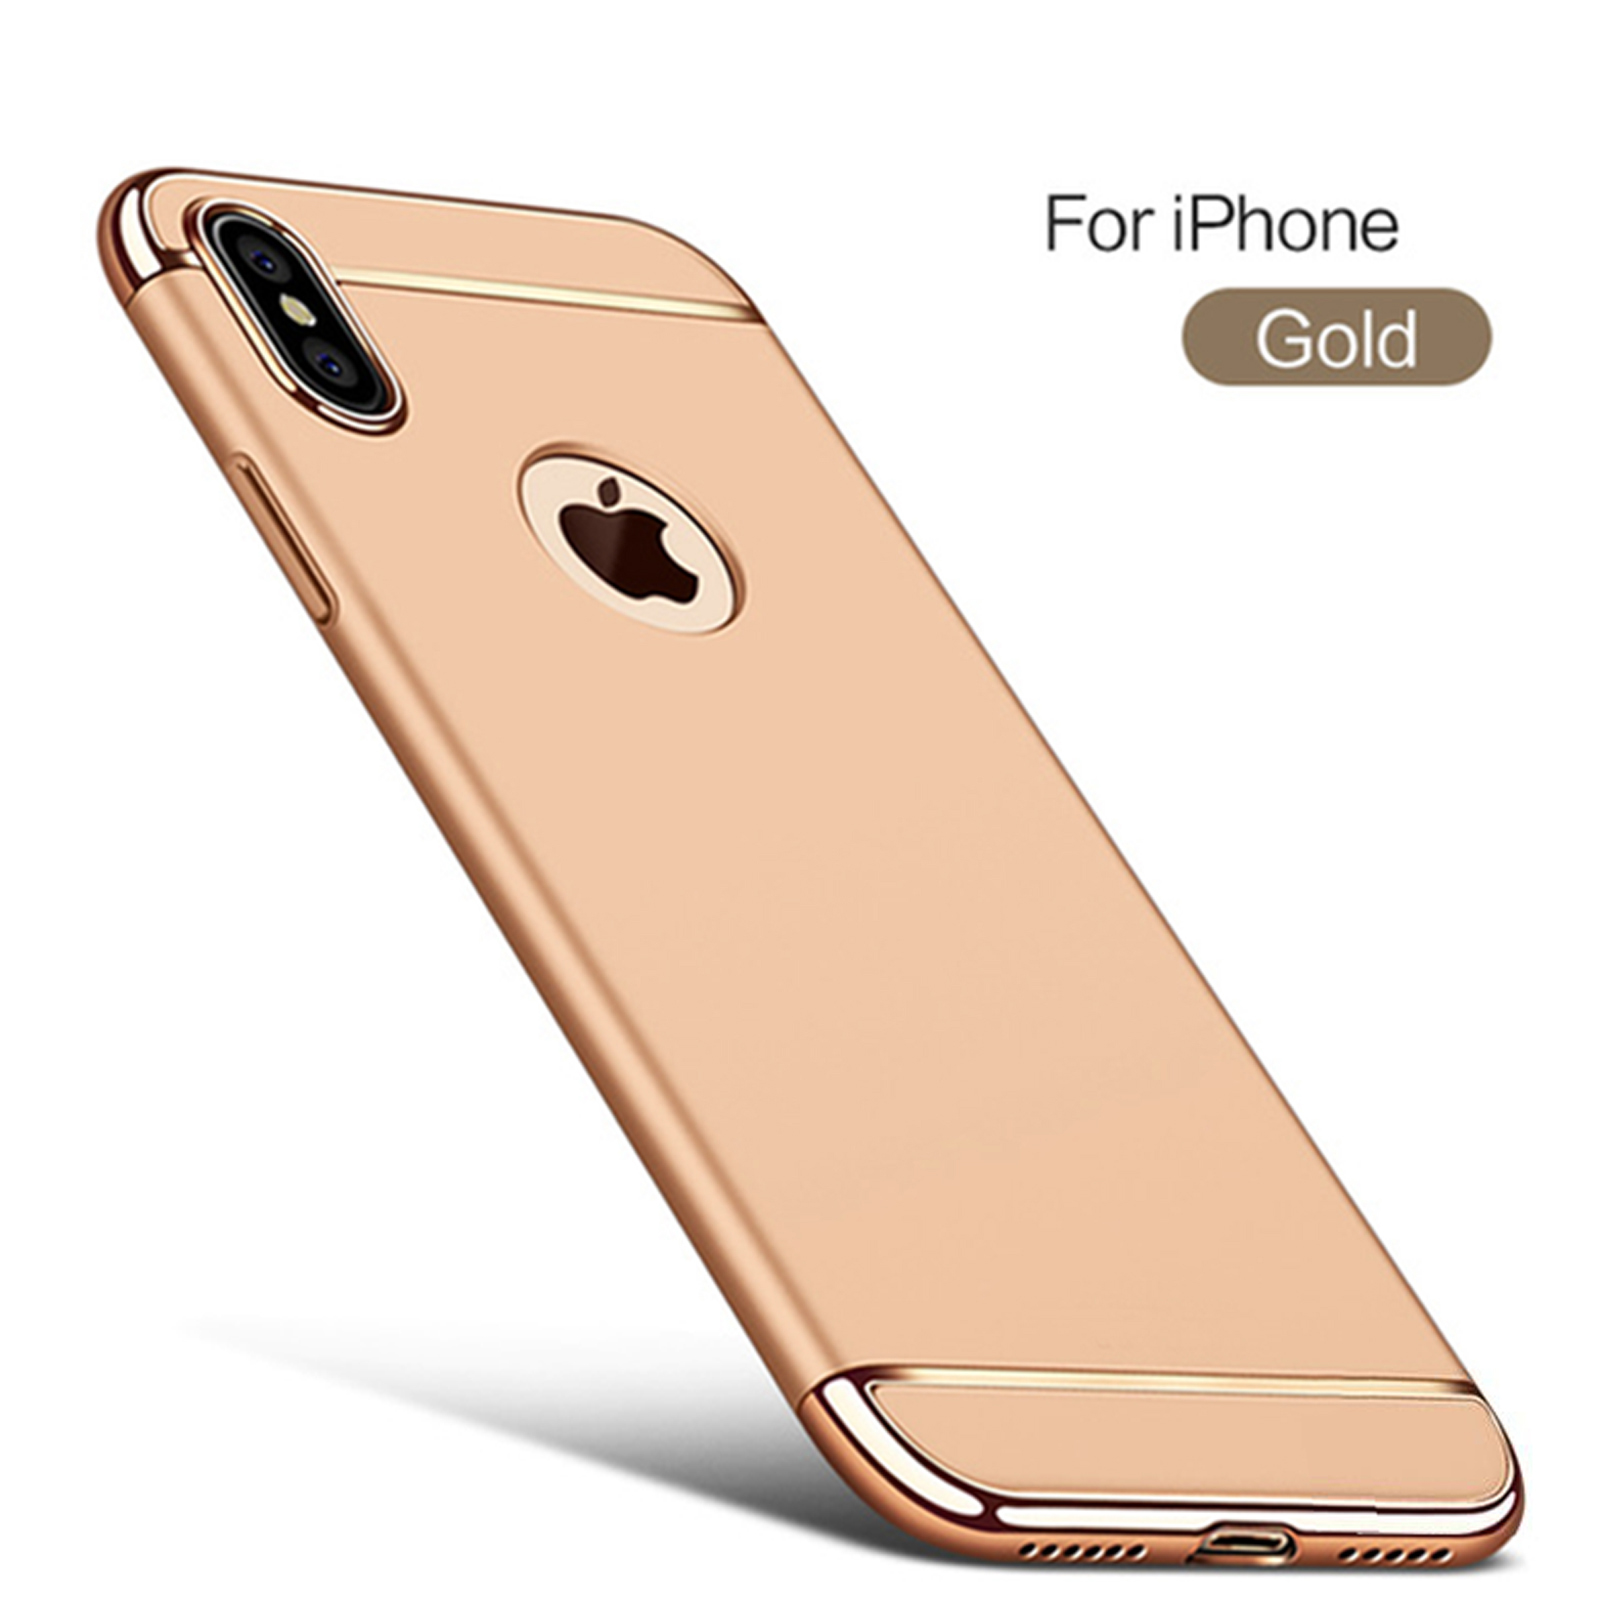 thumbnail 87 - Luxury Matte Case Tempered Glass Cover For Apple iPhone X XS XR Max 10 8 7 6s 6